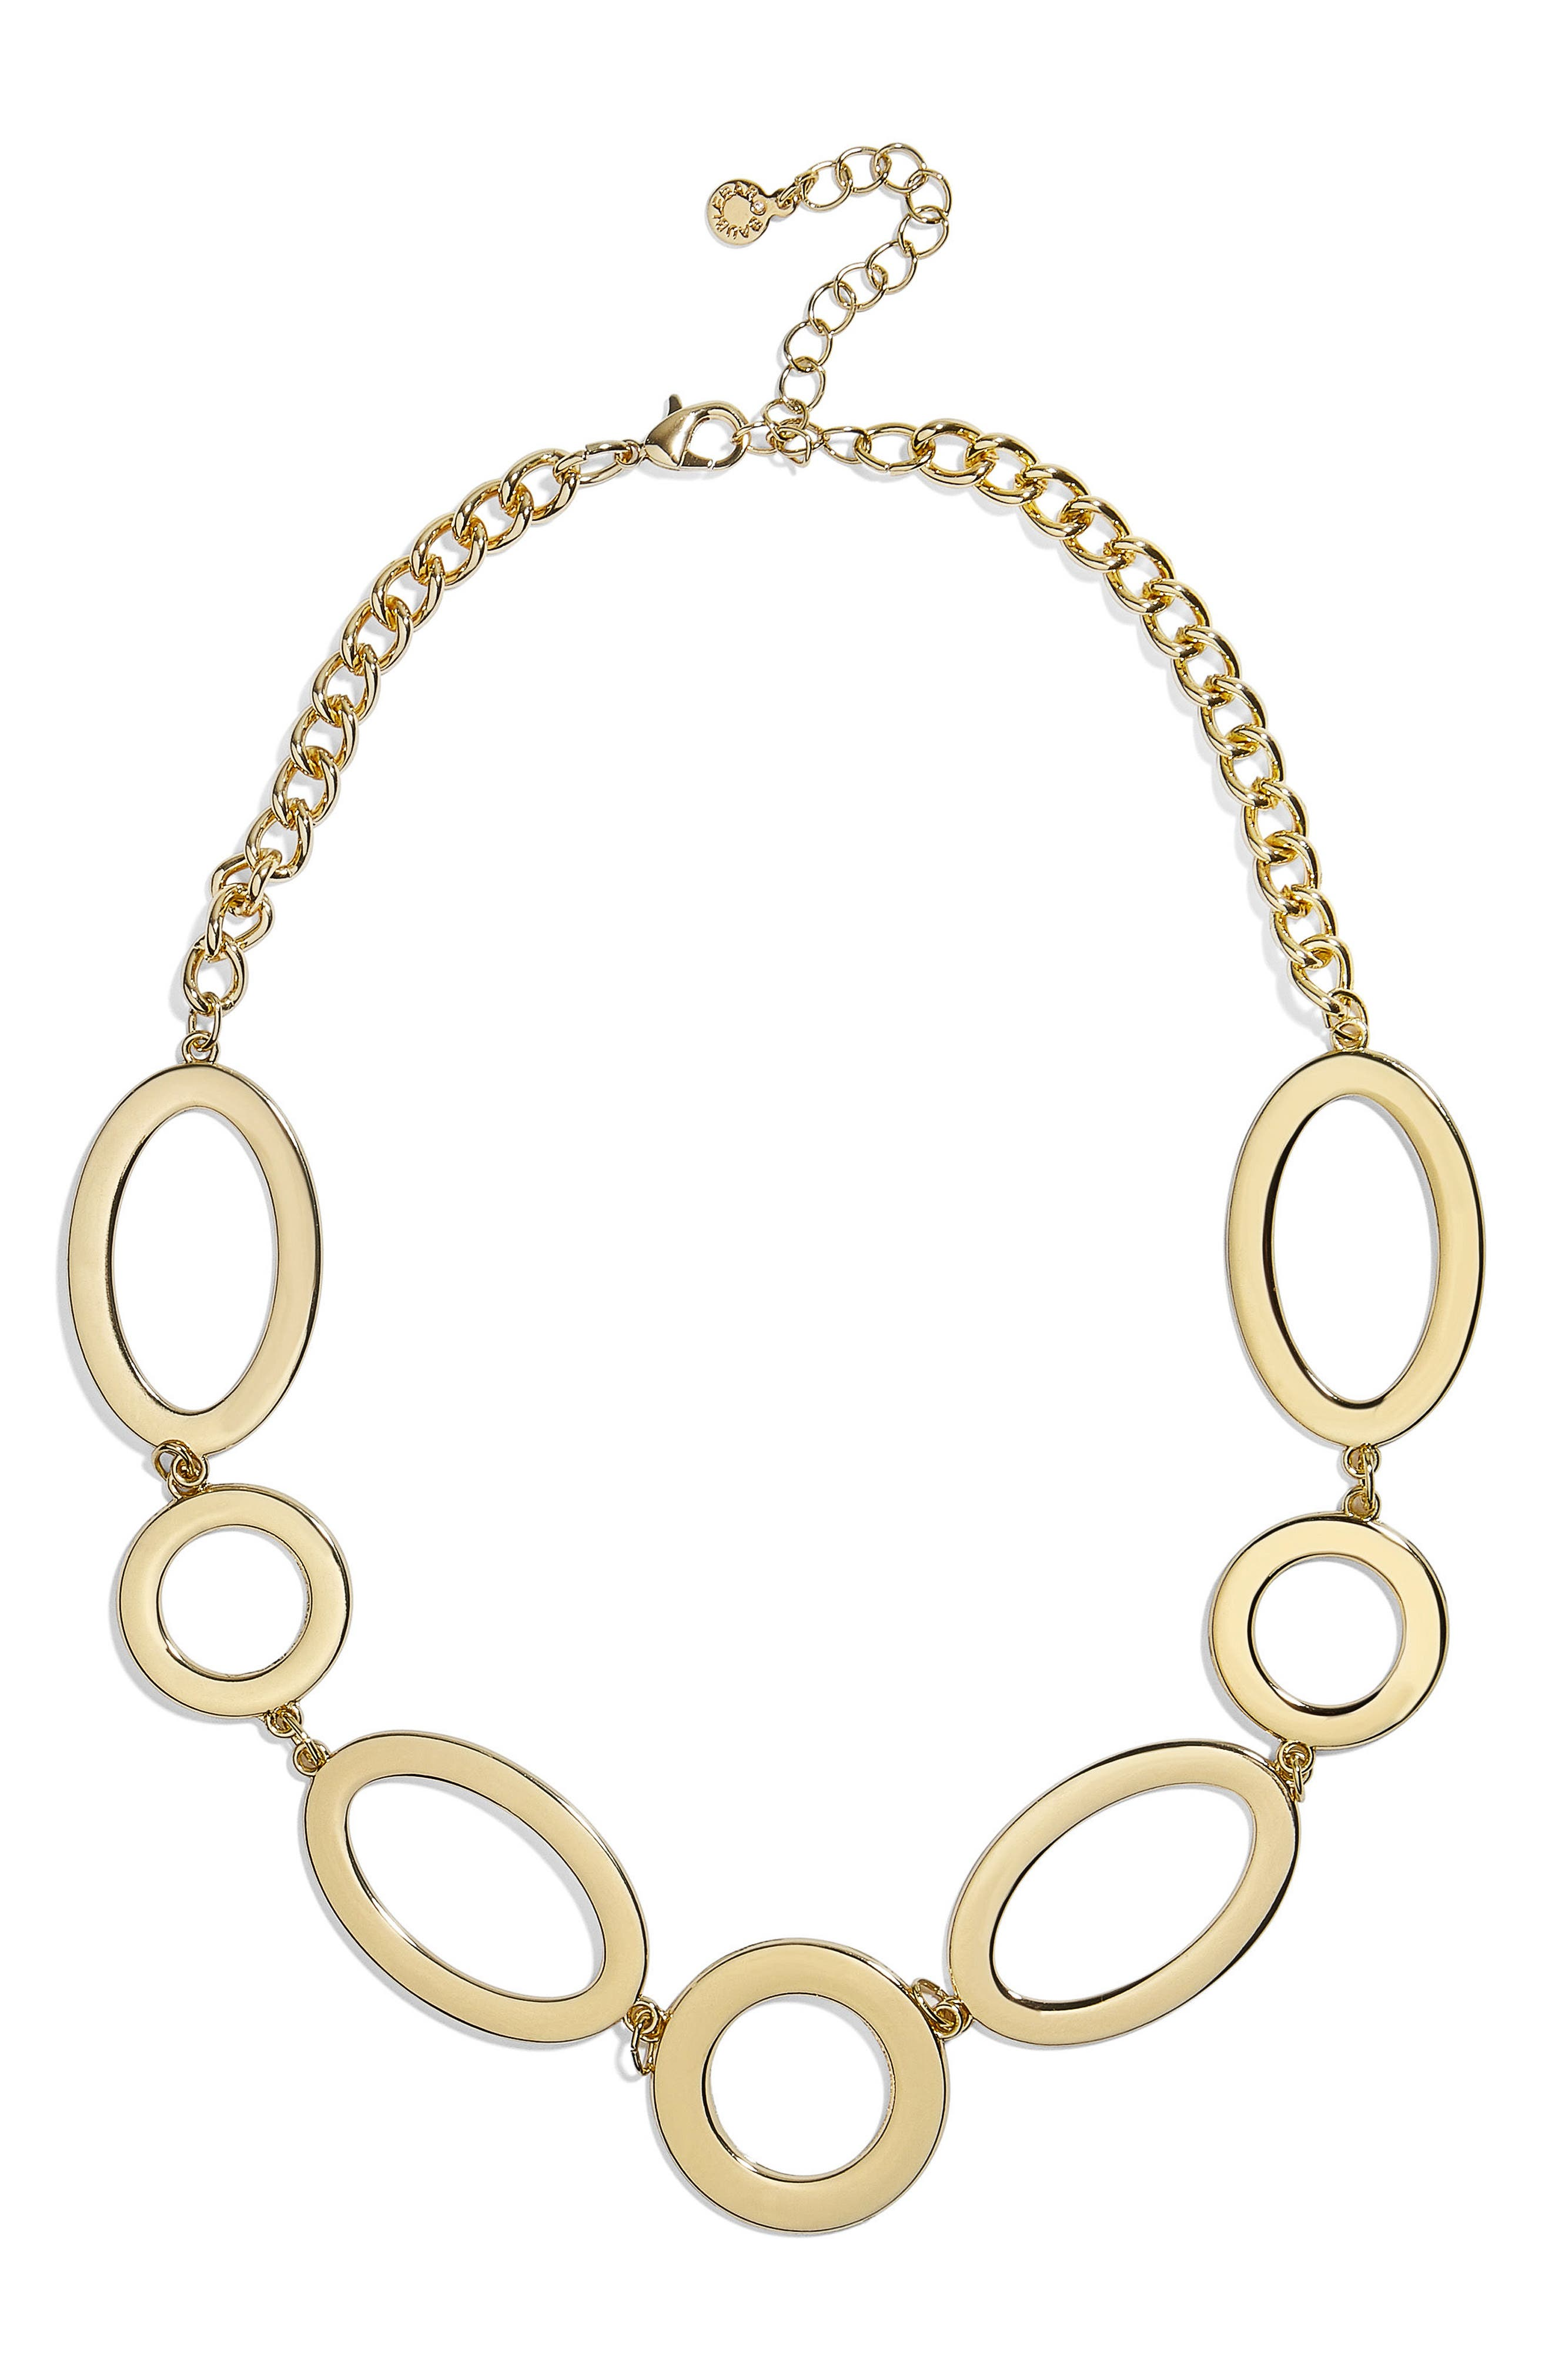 Romona Oval & Circle Statement Necklace,                         Main,                         color, Gold